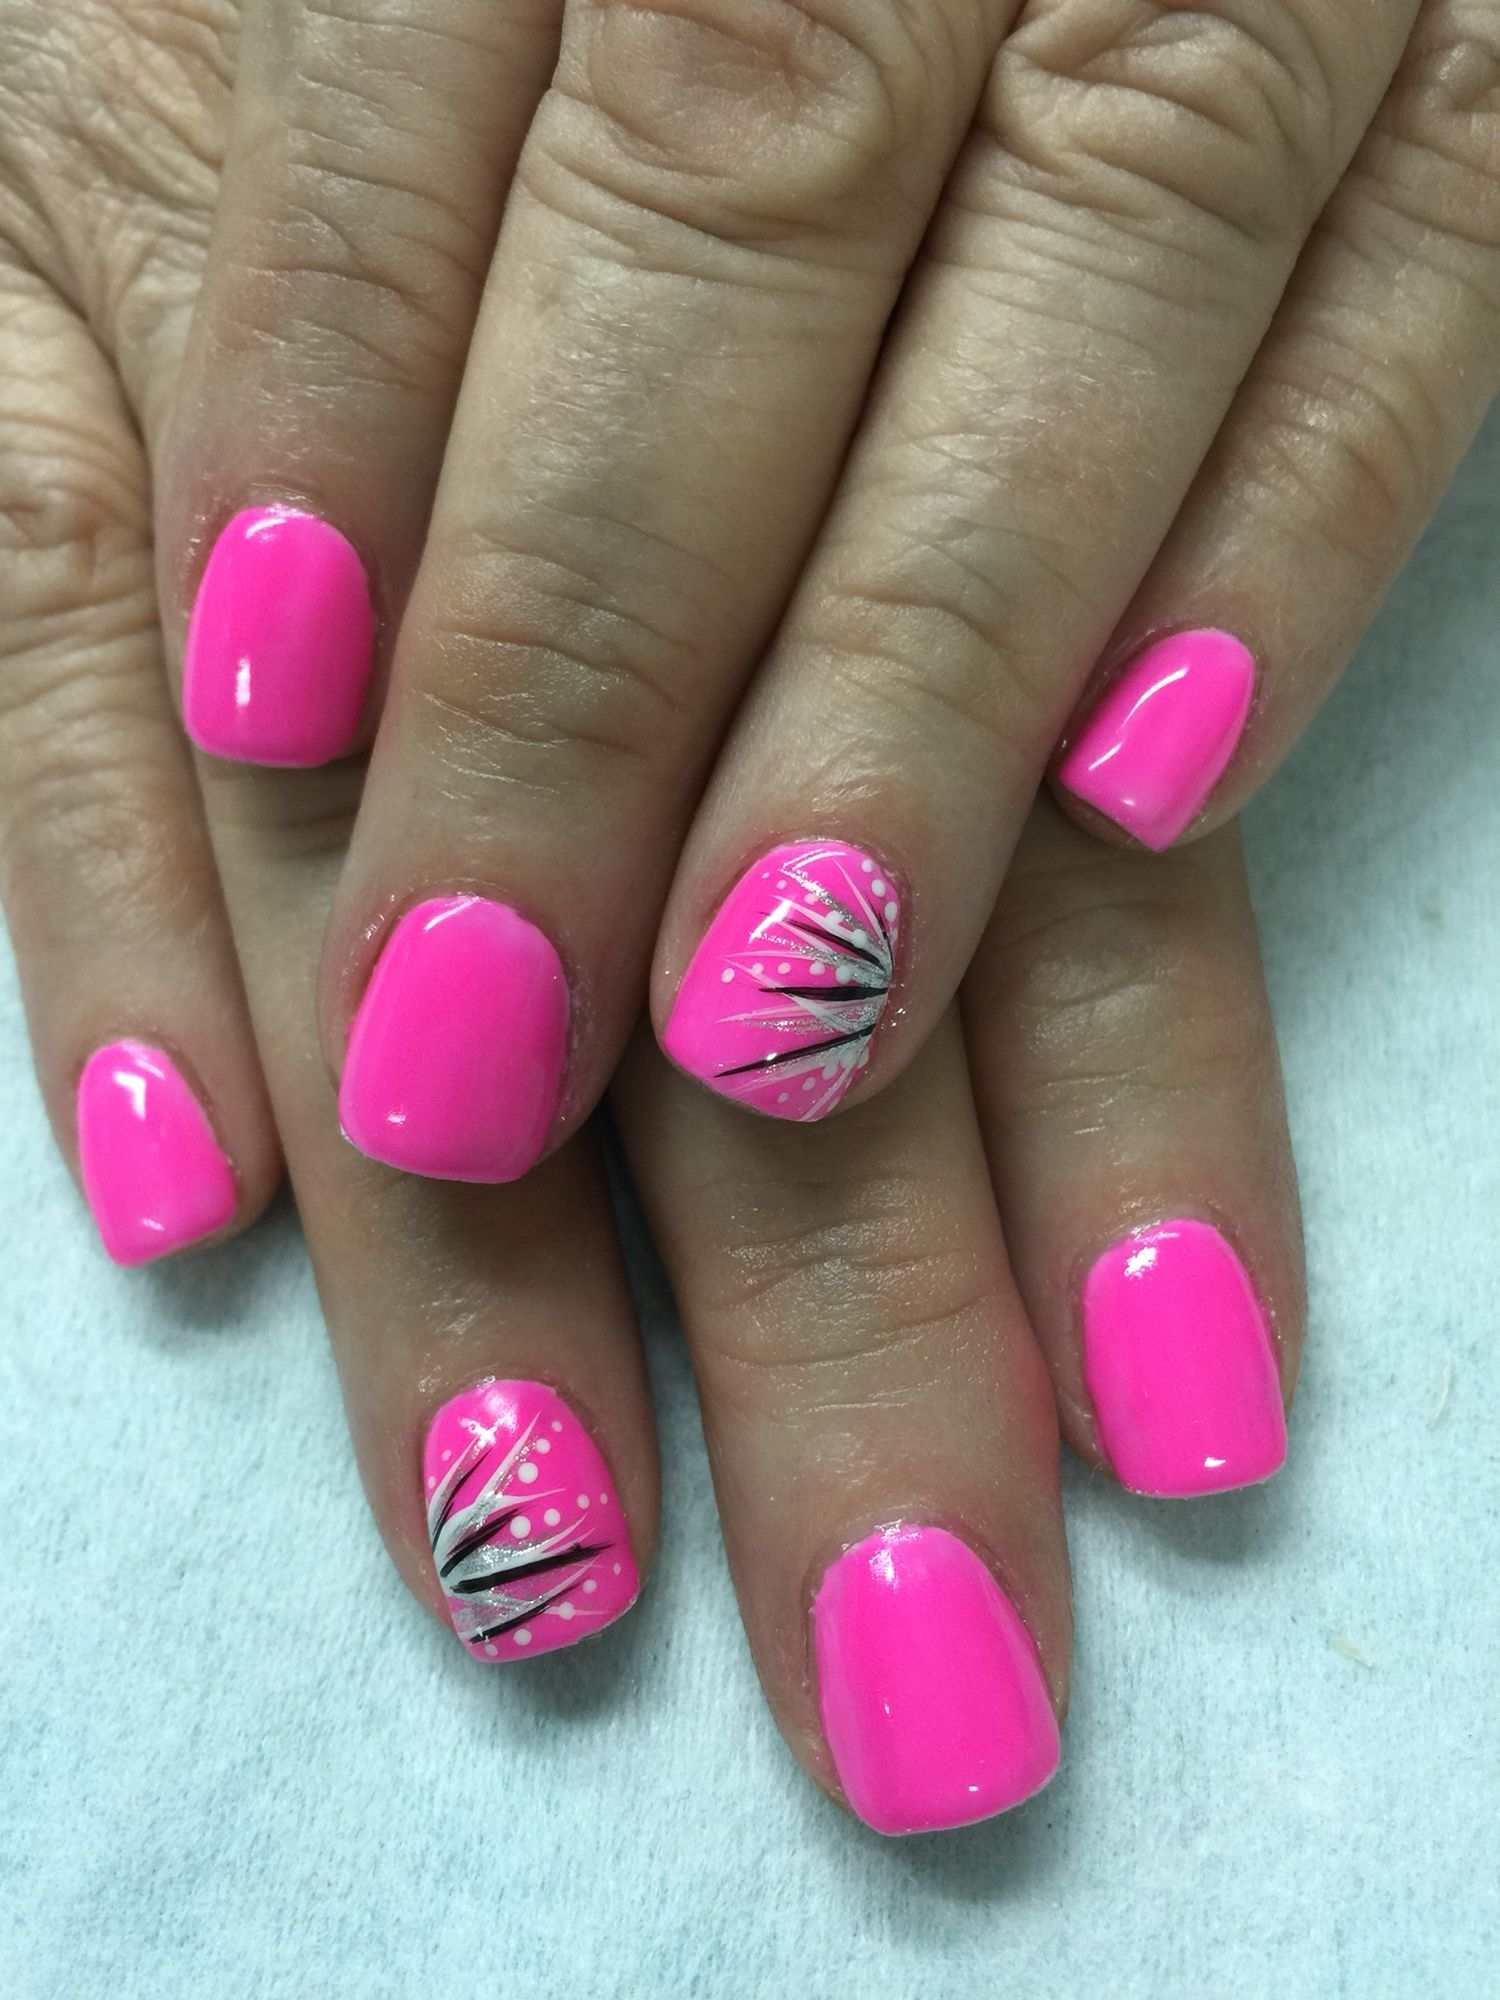 Neon pink with fun accents gel nails | Gel Nail designs | Pinterest ...